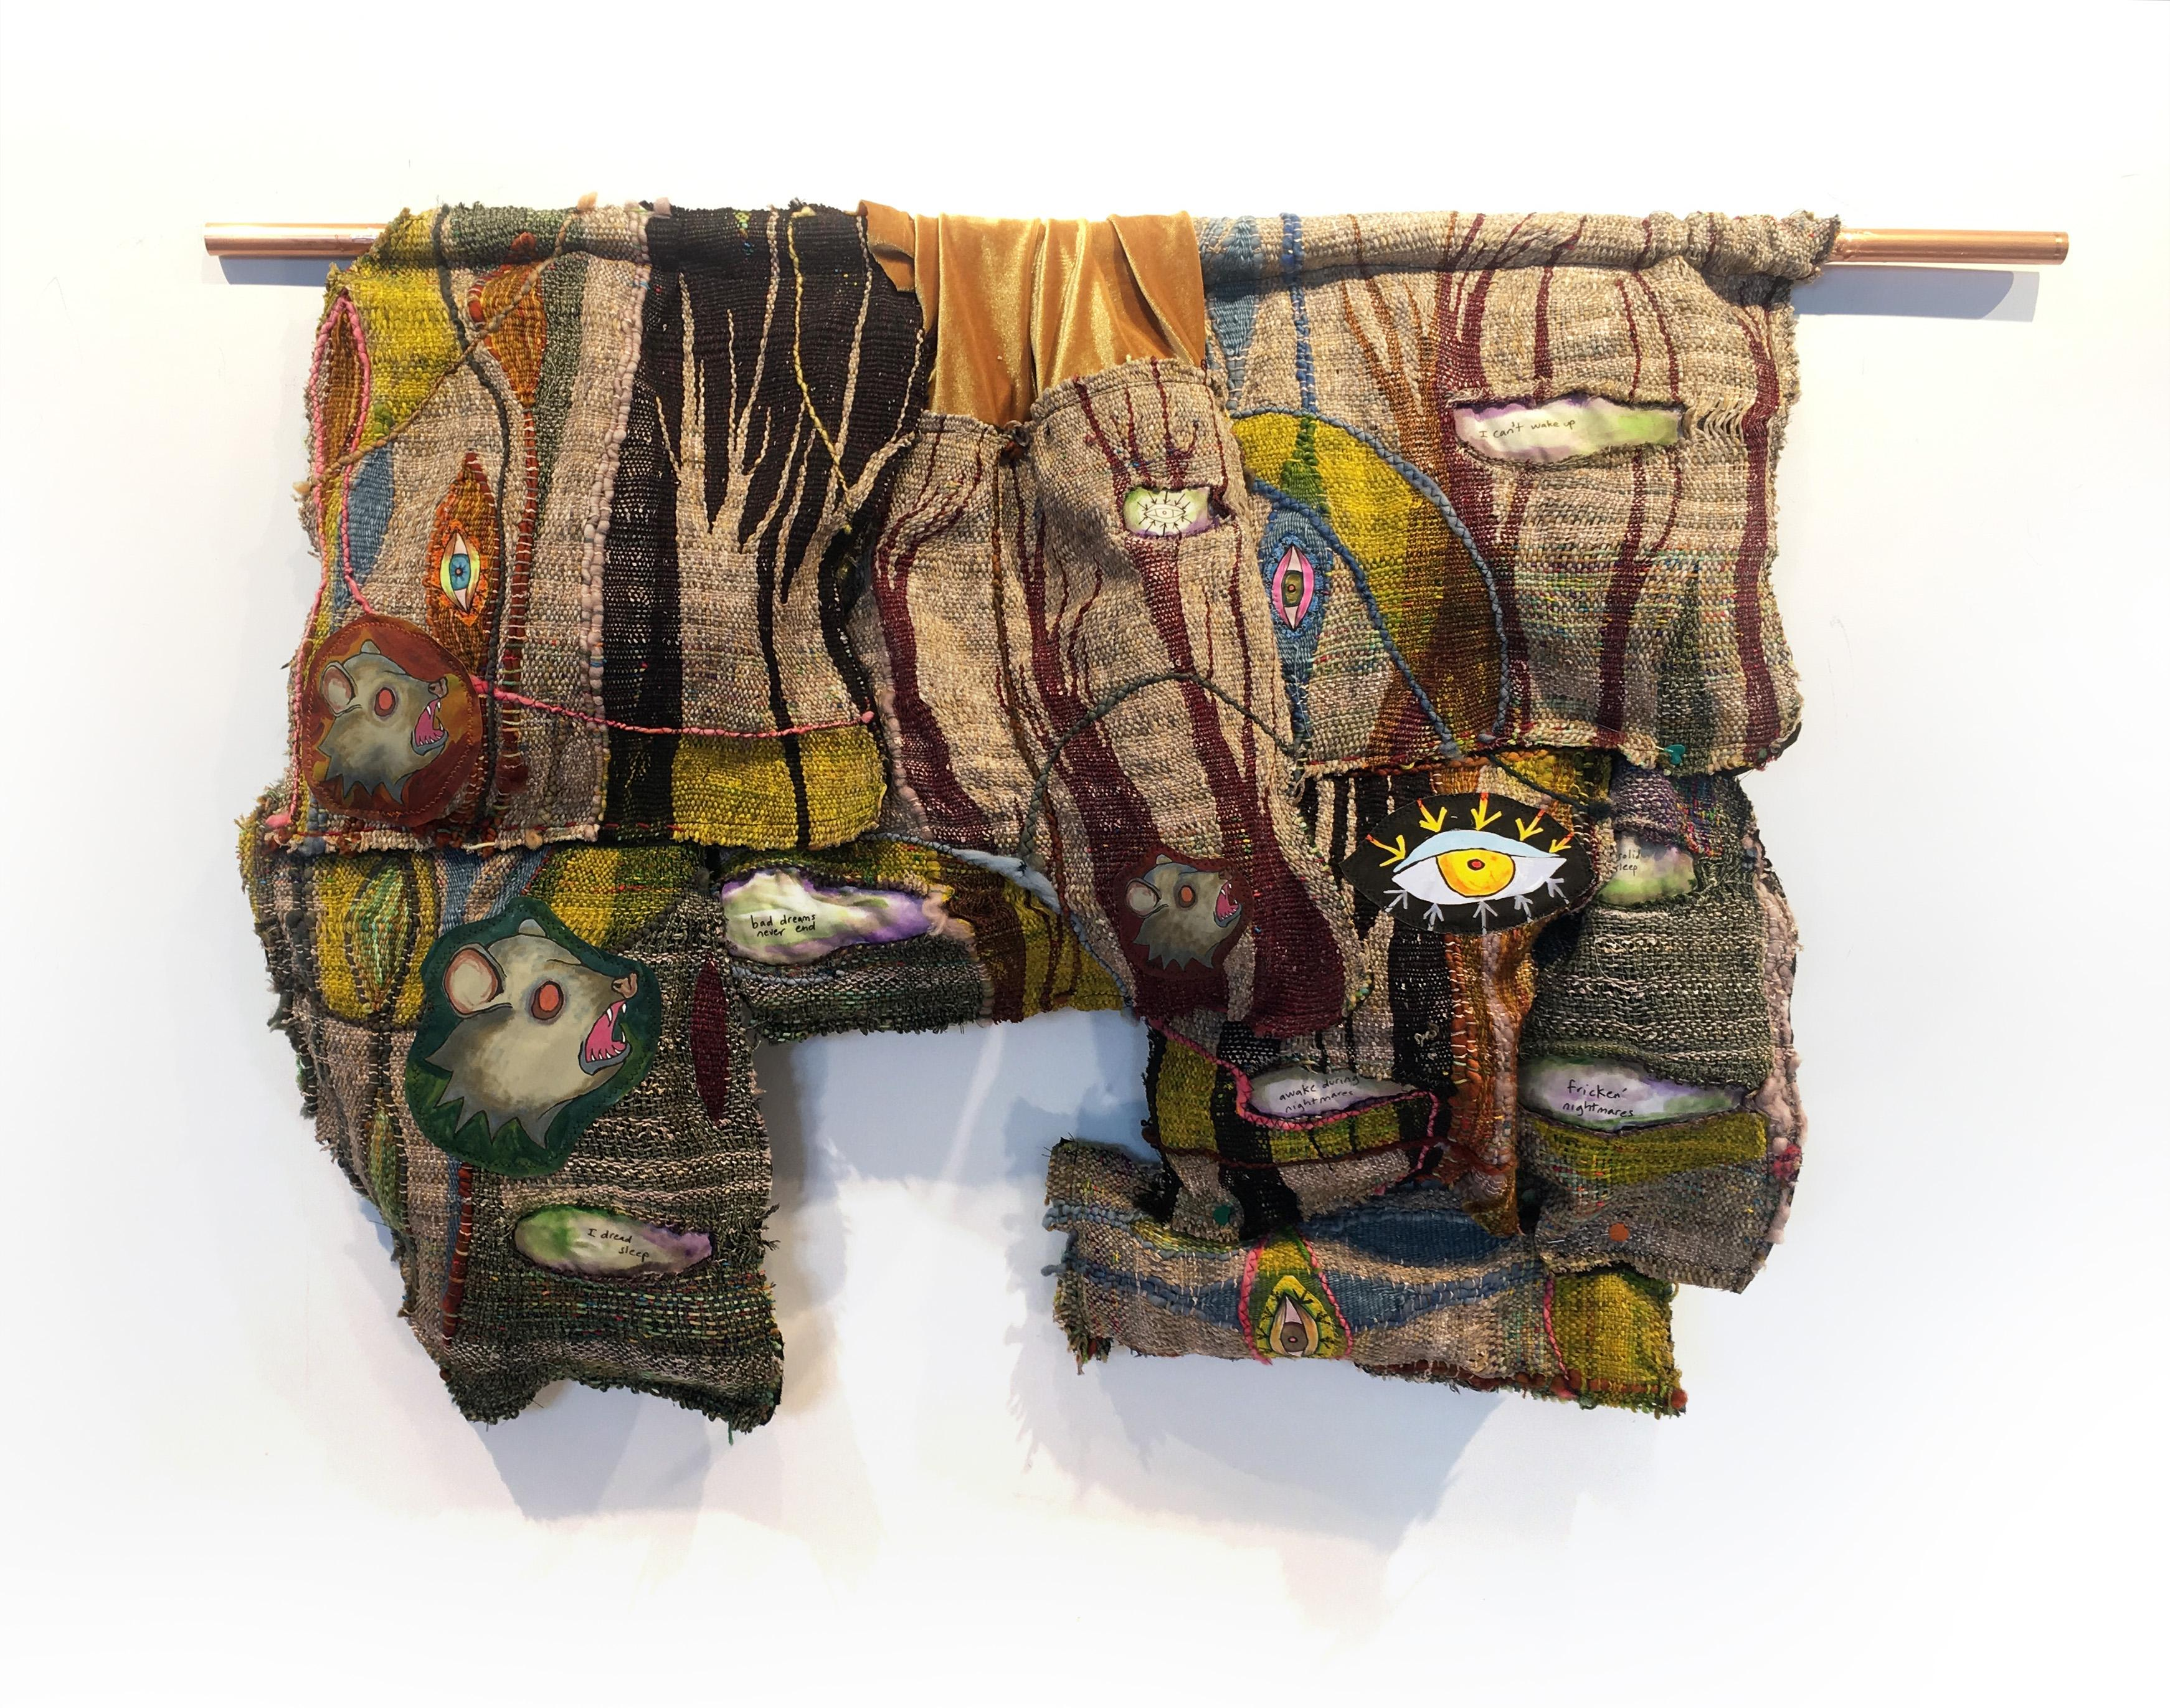 Textile Handwoven Wall Hanging: 'Forest and Trees'